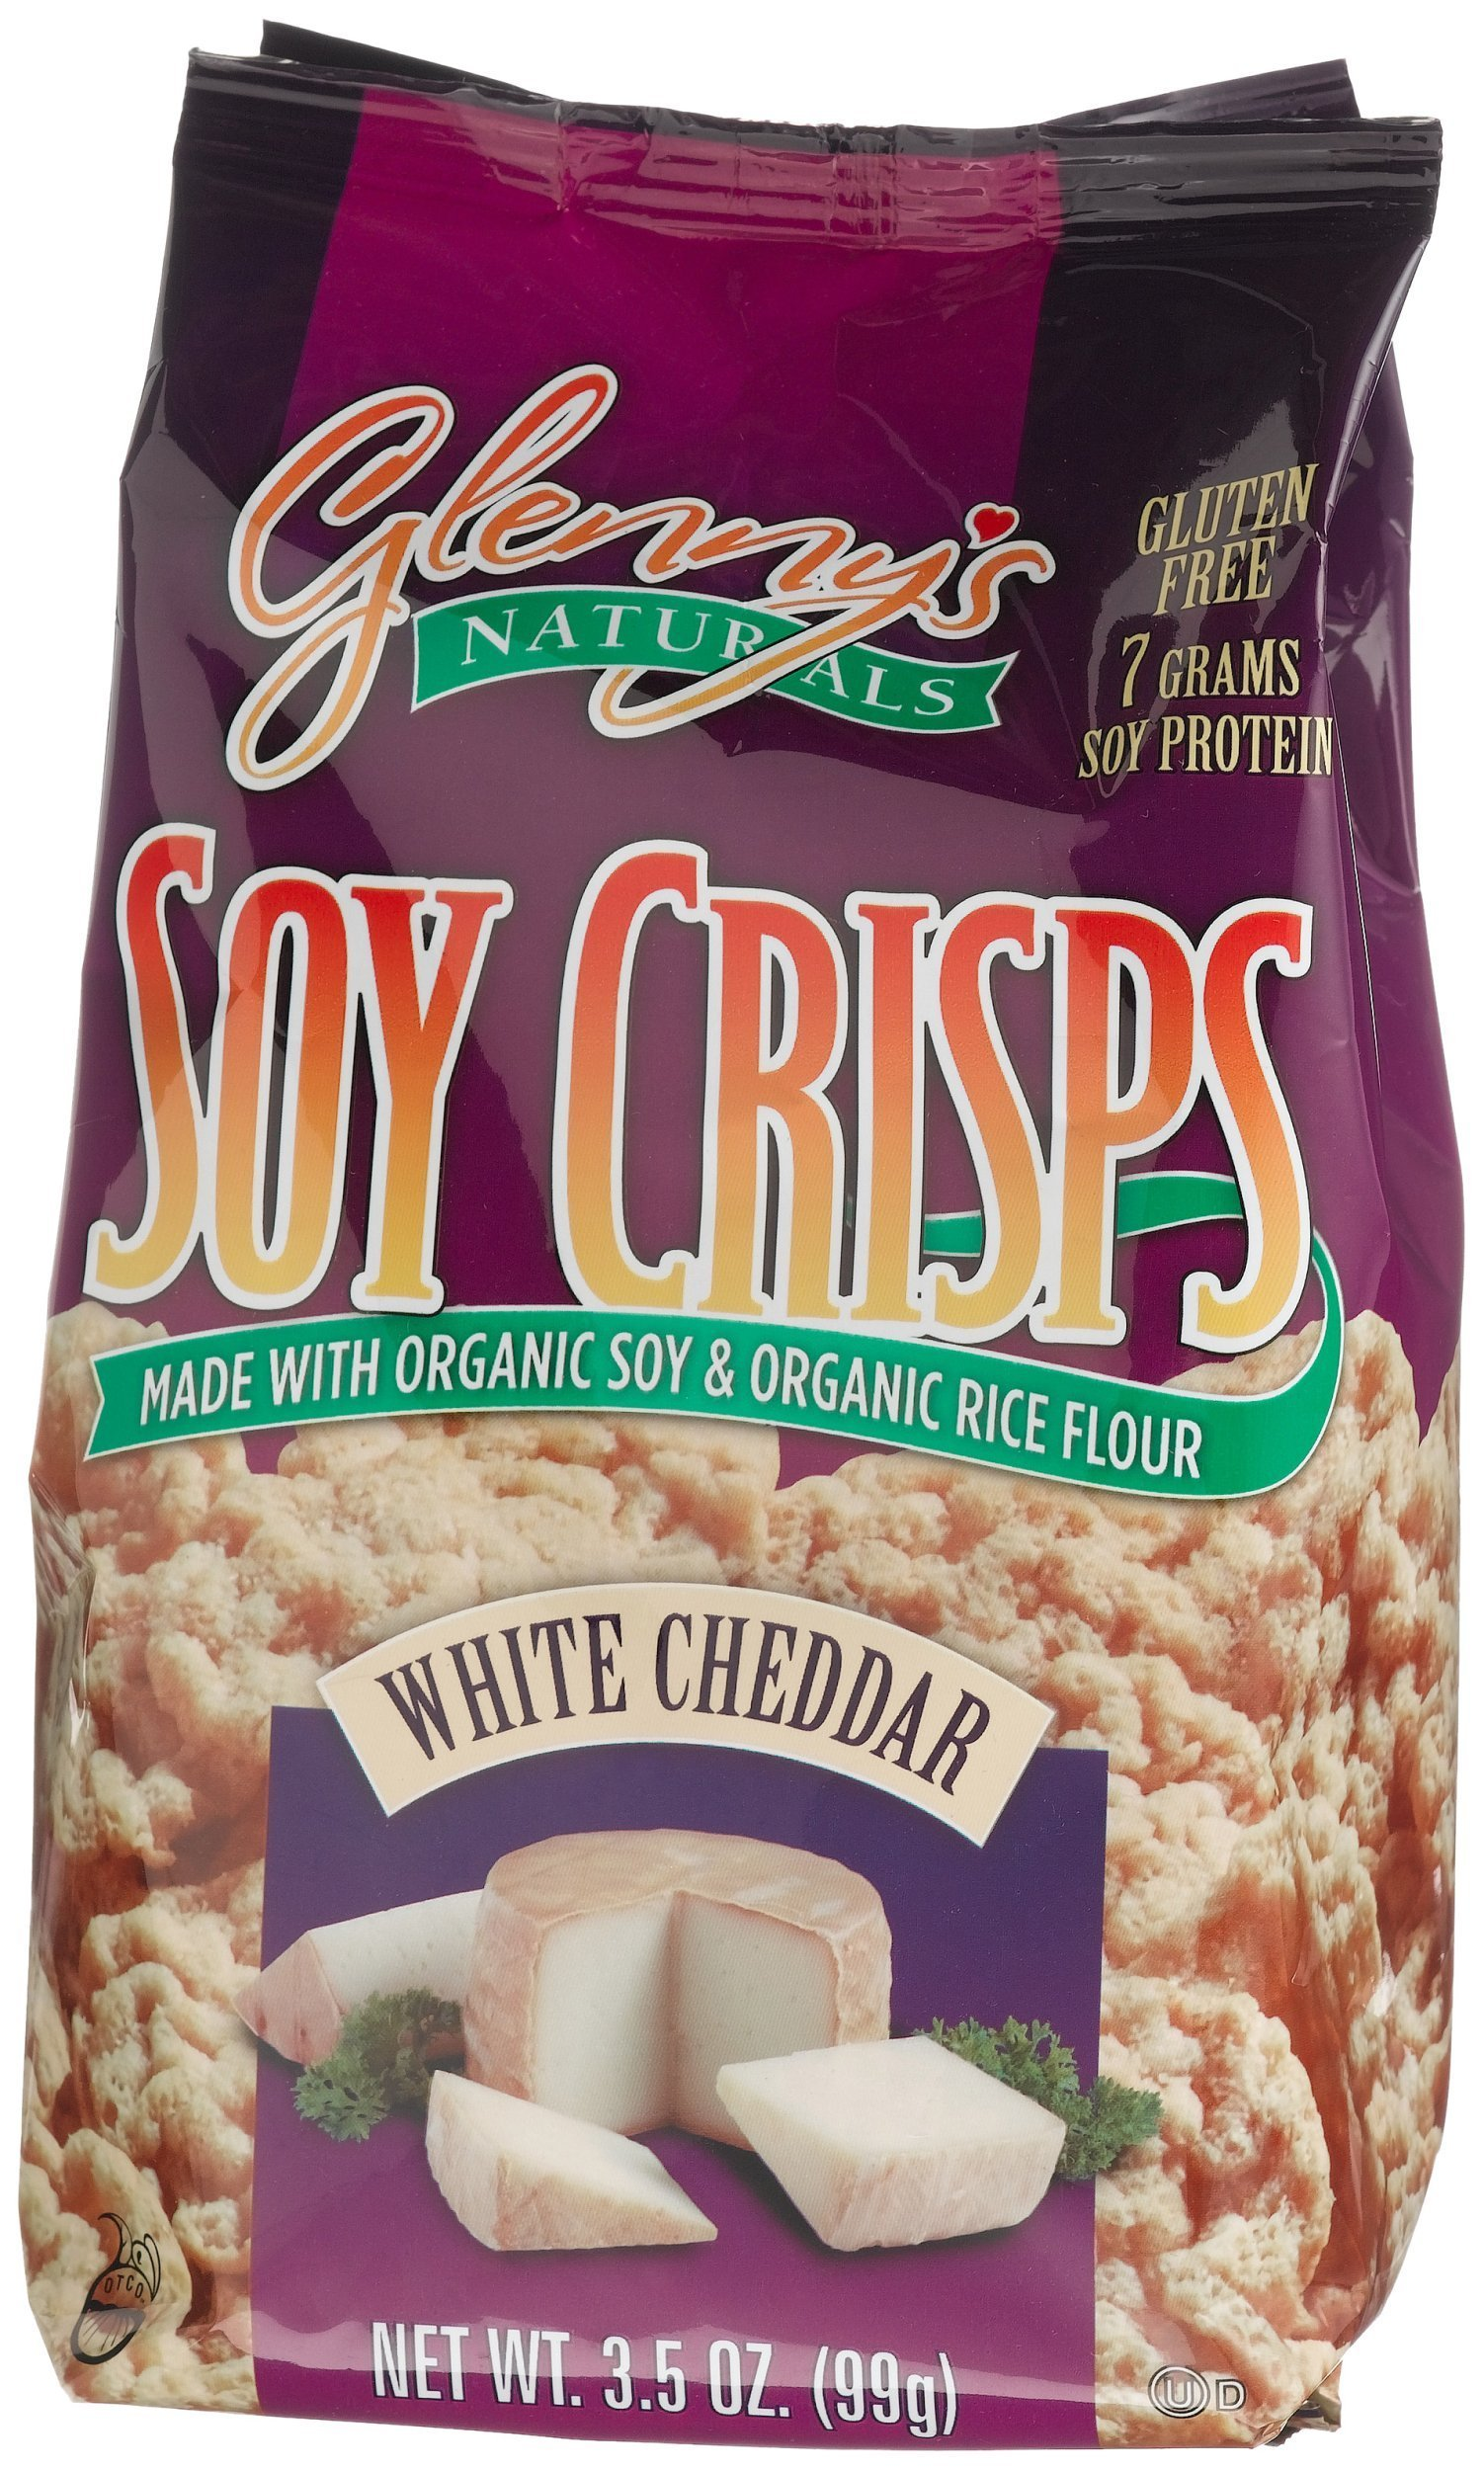 Glenny's Soy Crisps, White Cheddar, 3.5-Ounce Bags (Pack of 6)